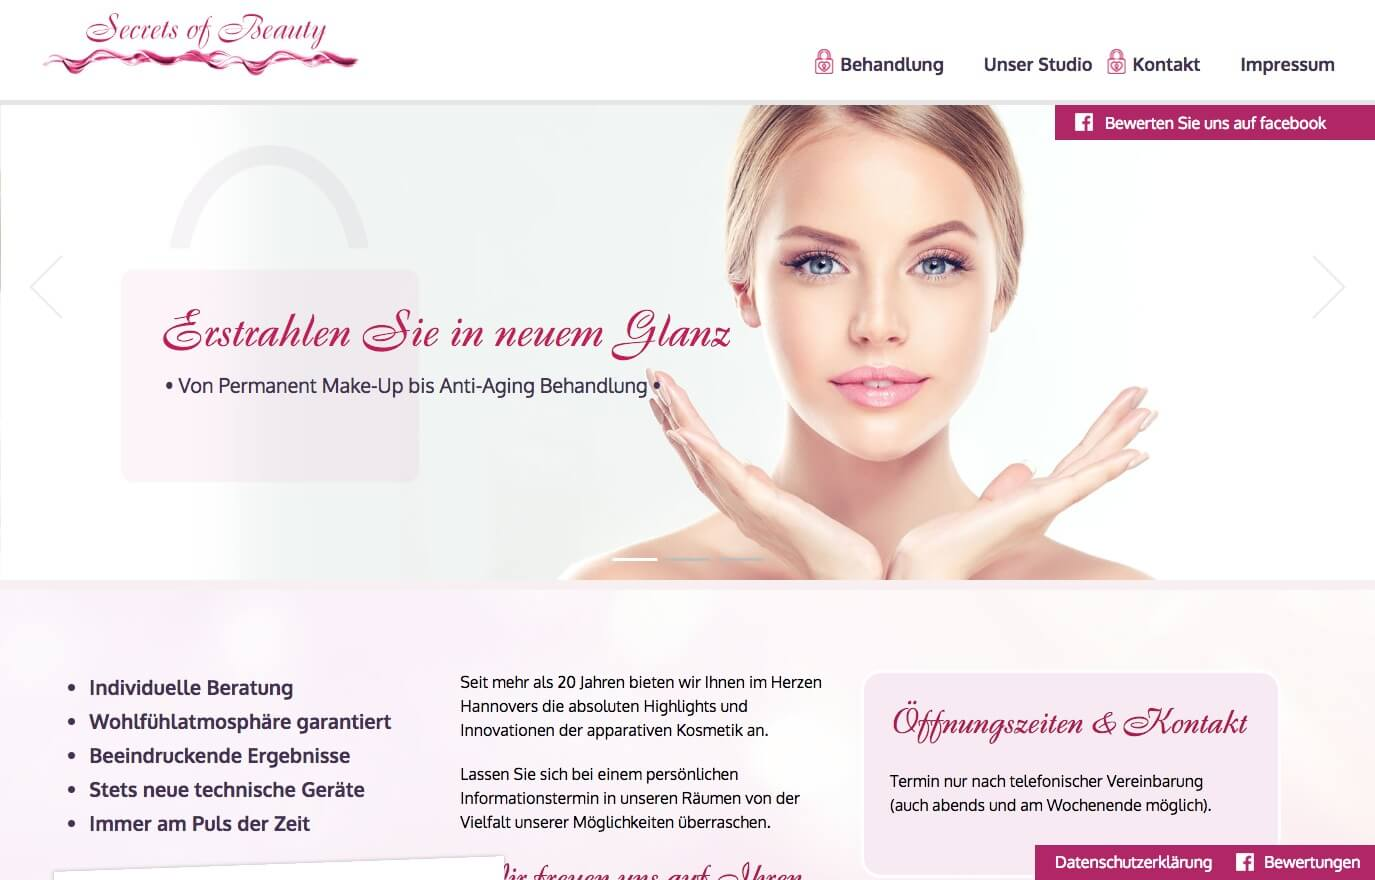 Image of Professionelle dauerhafte Haarentfernungen in Hannover: Kosmetikstudio Secrets of Beauty